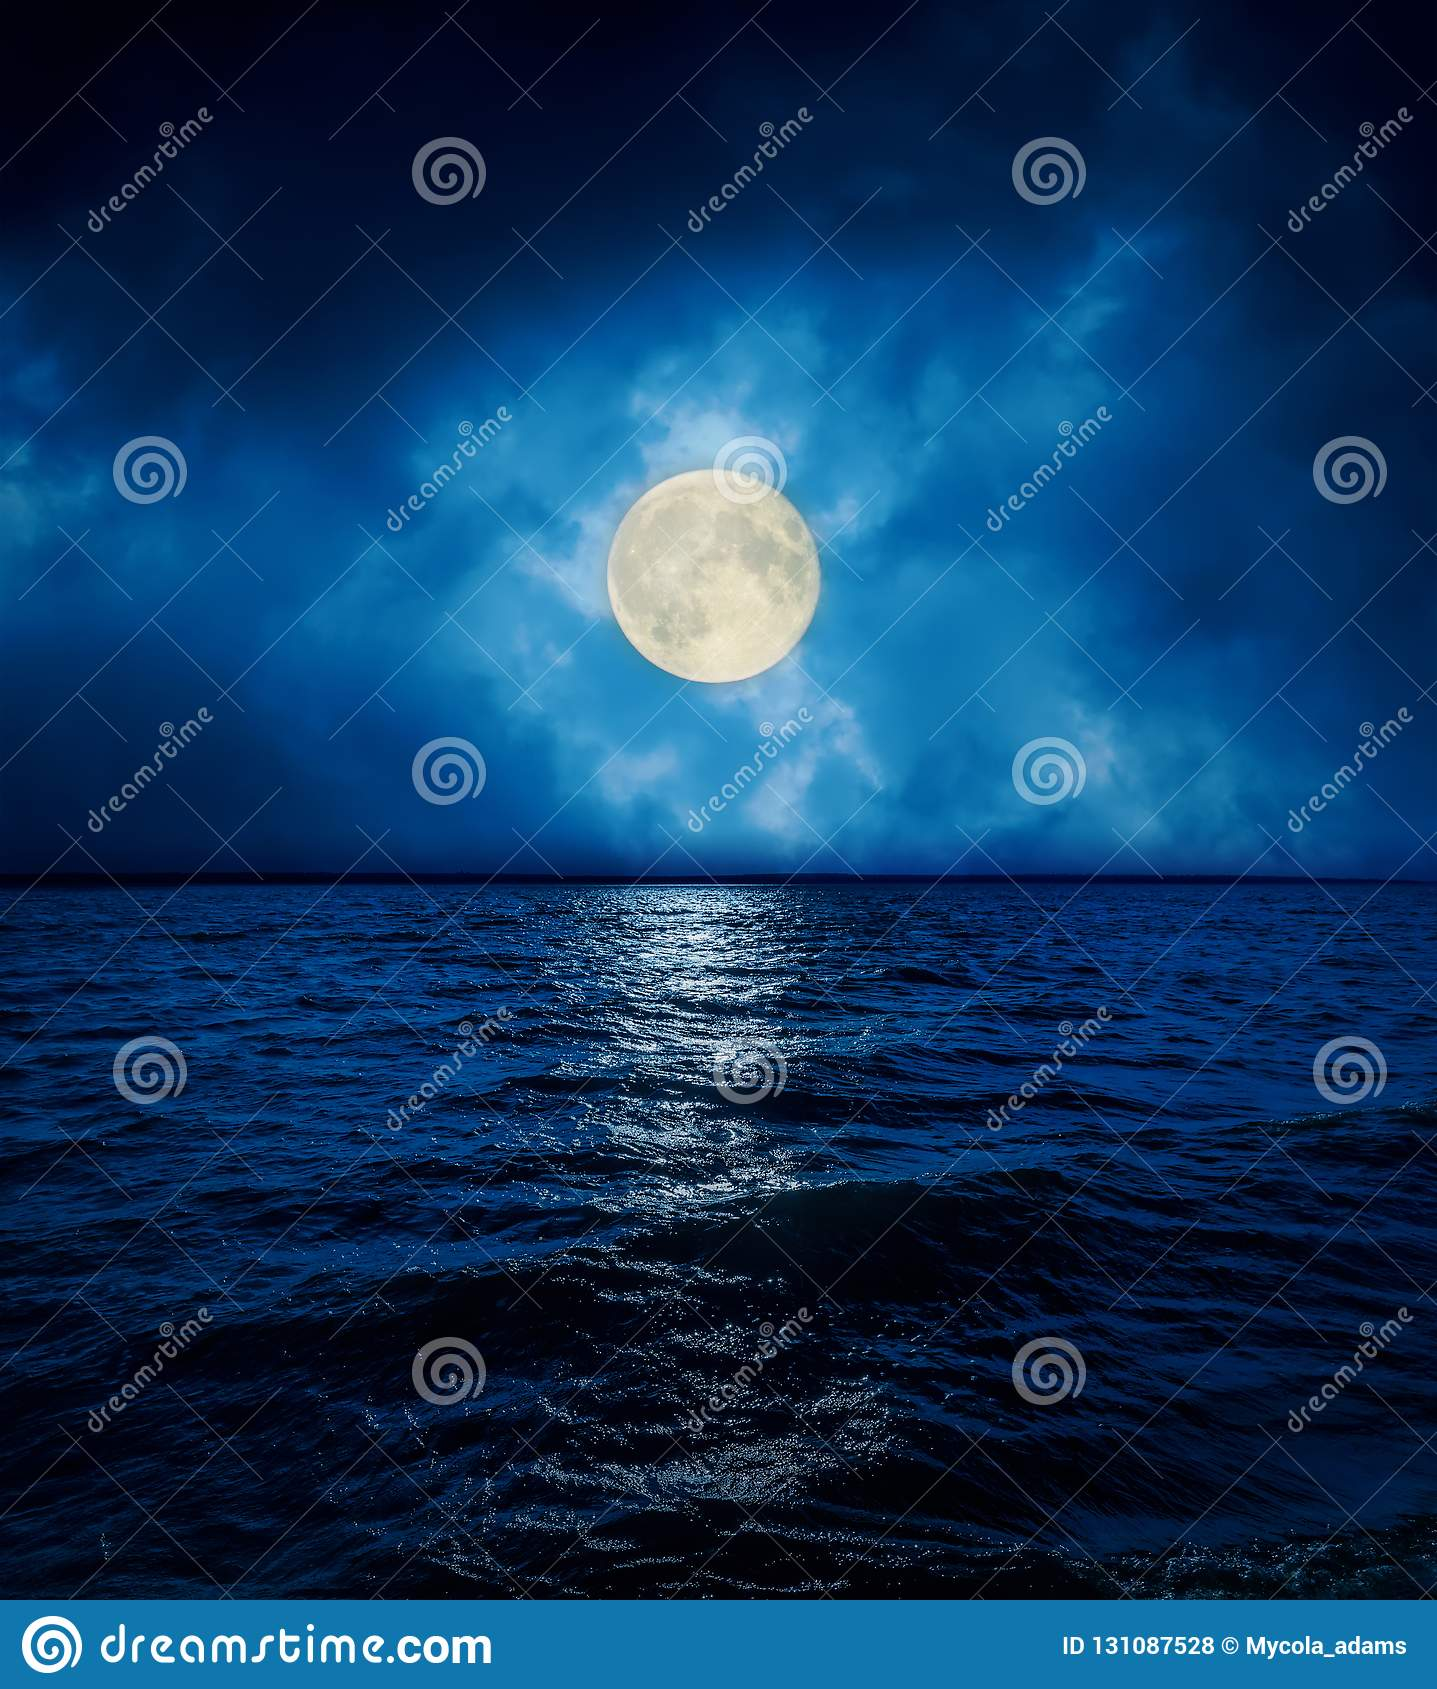 Full moon in dramatic clouds over dark water